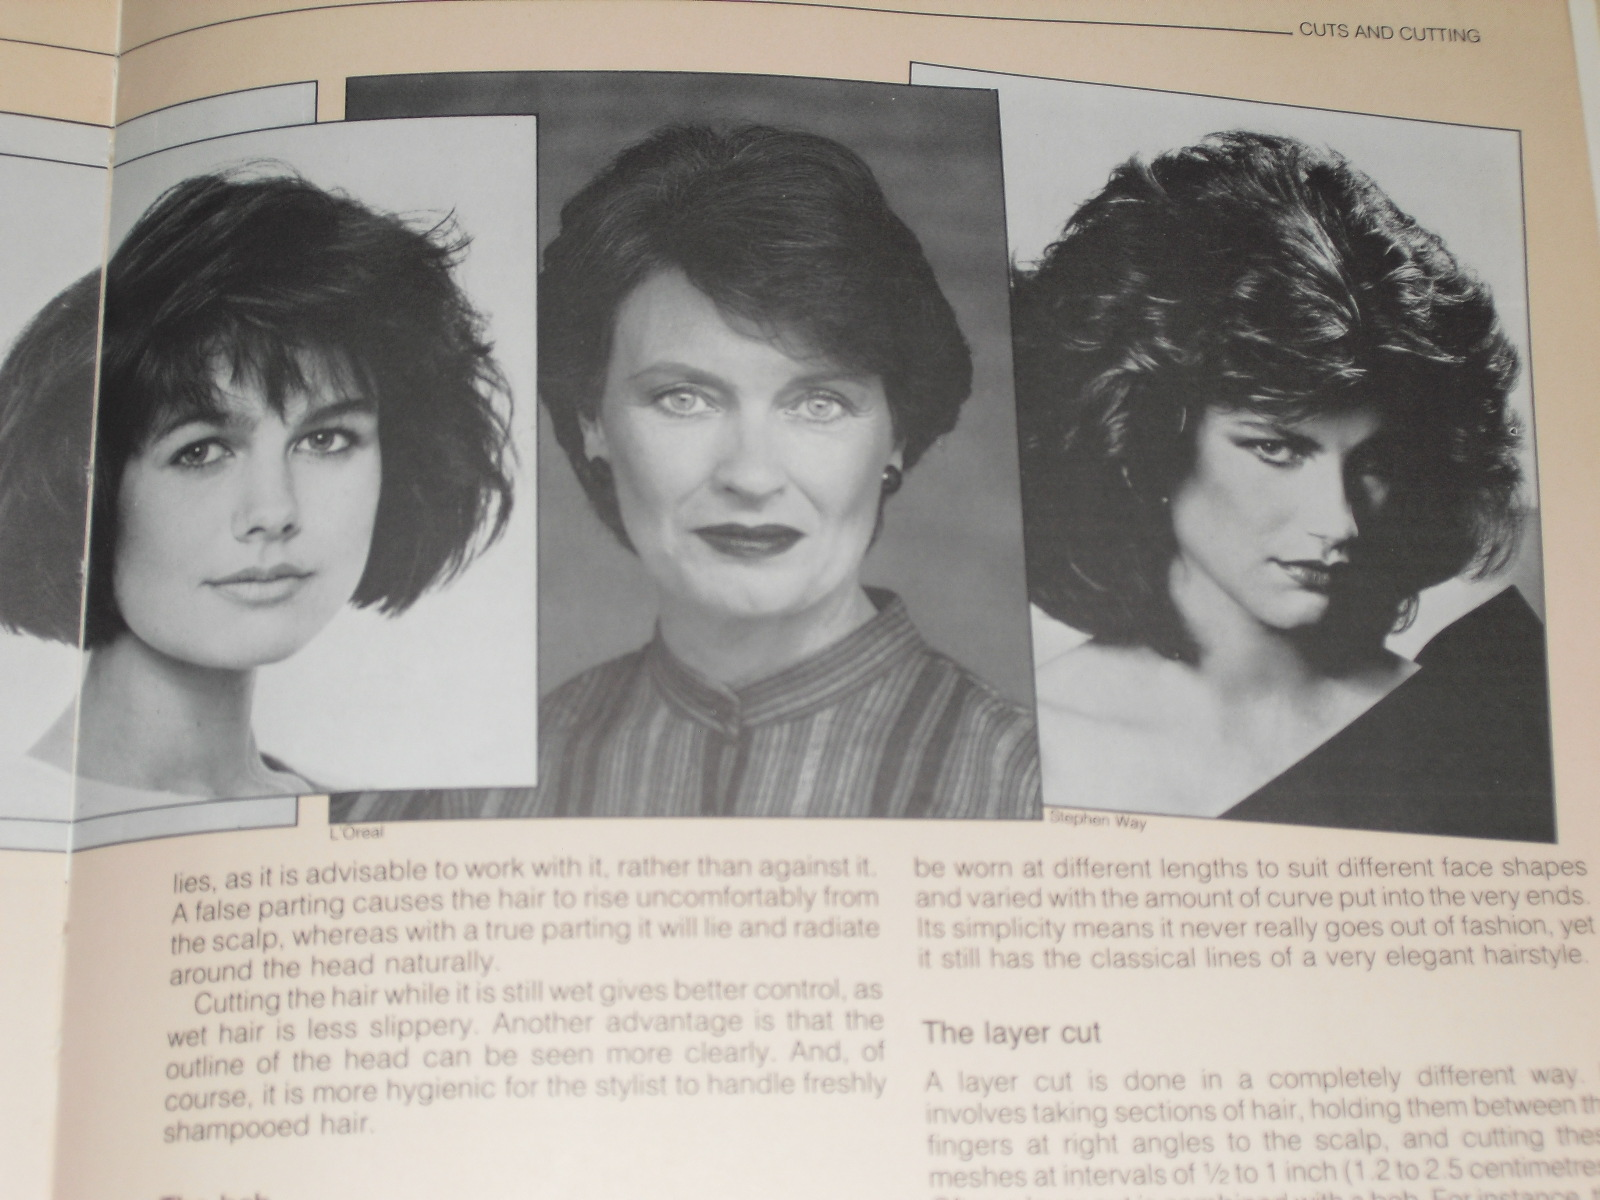 Pictures of 3 women with 80's style haircuts